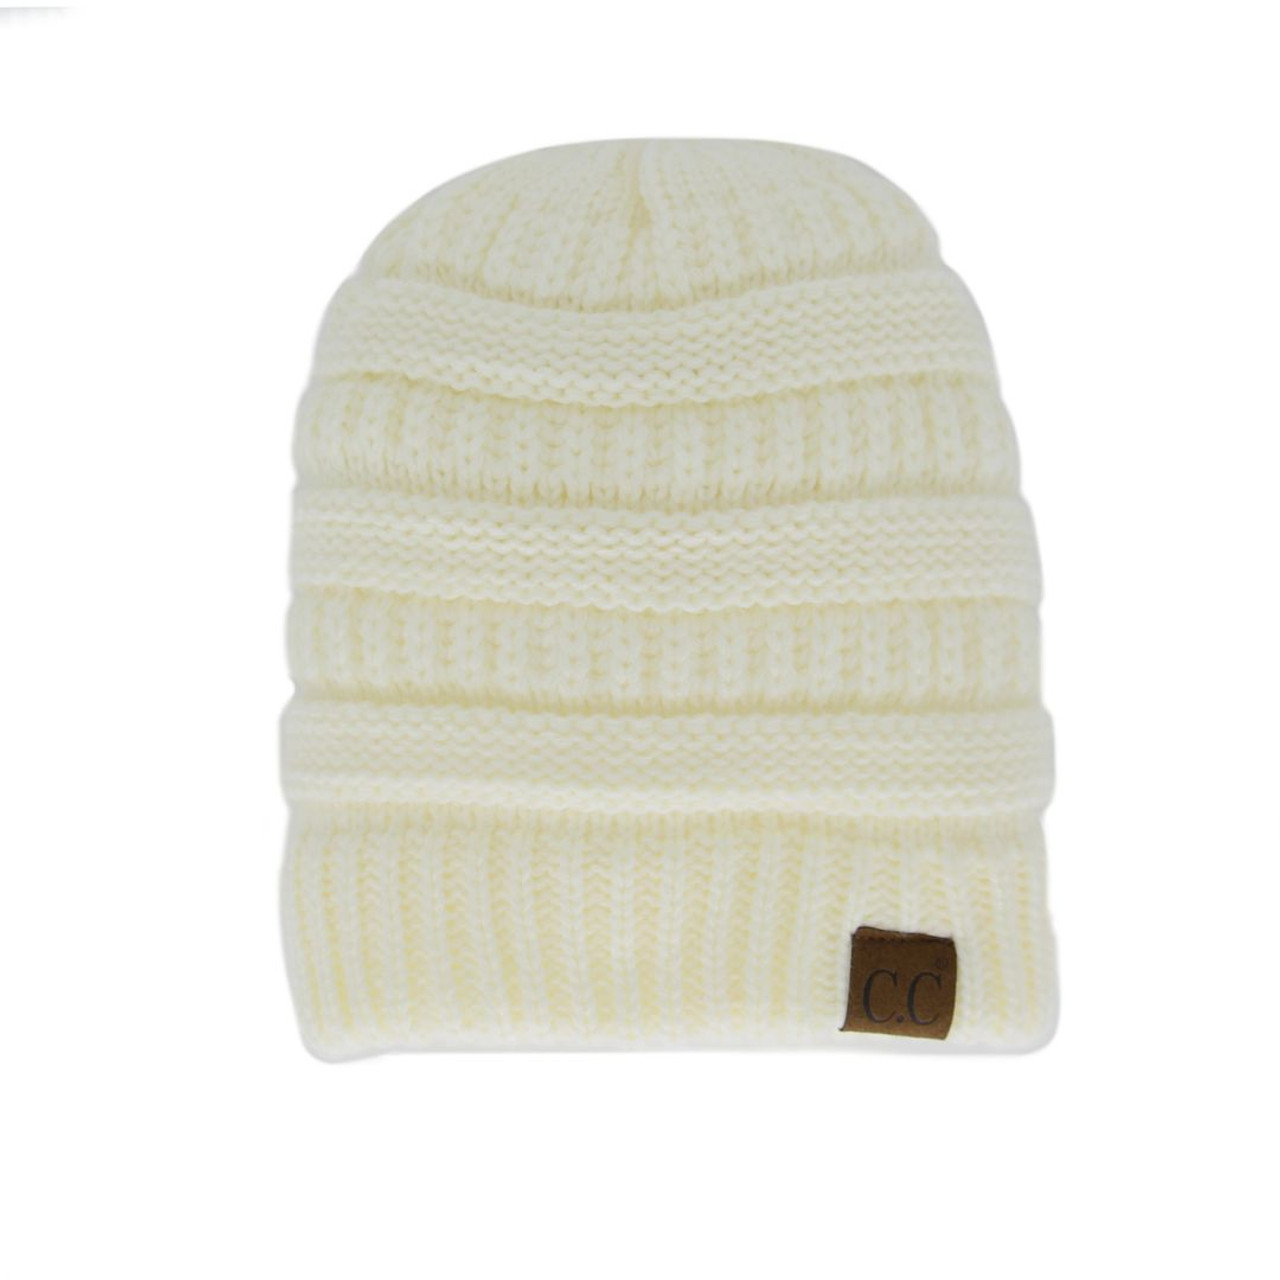 ecabcc942e6d59 Original C.C Beanie - Ivory - Trendy Threads Inc